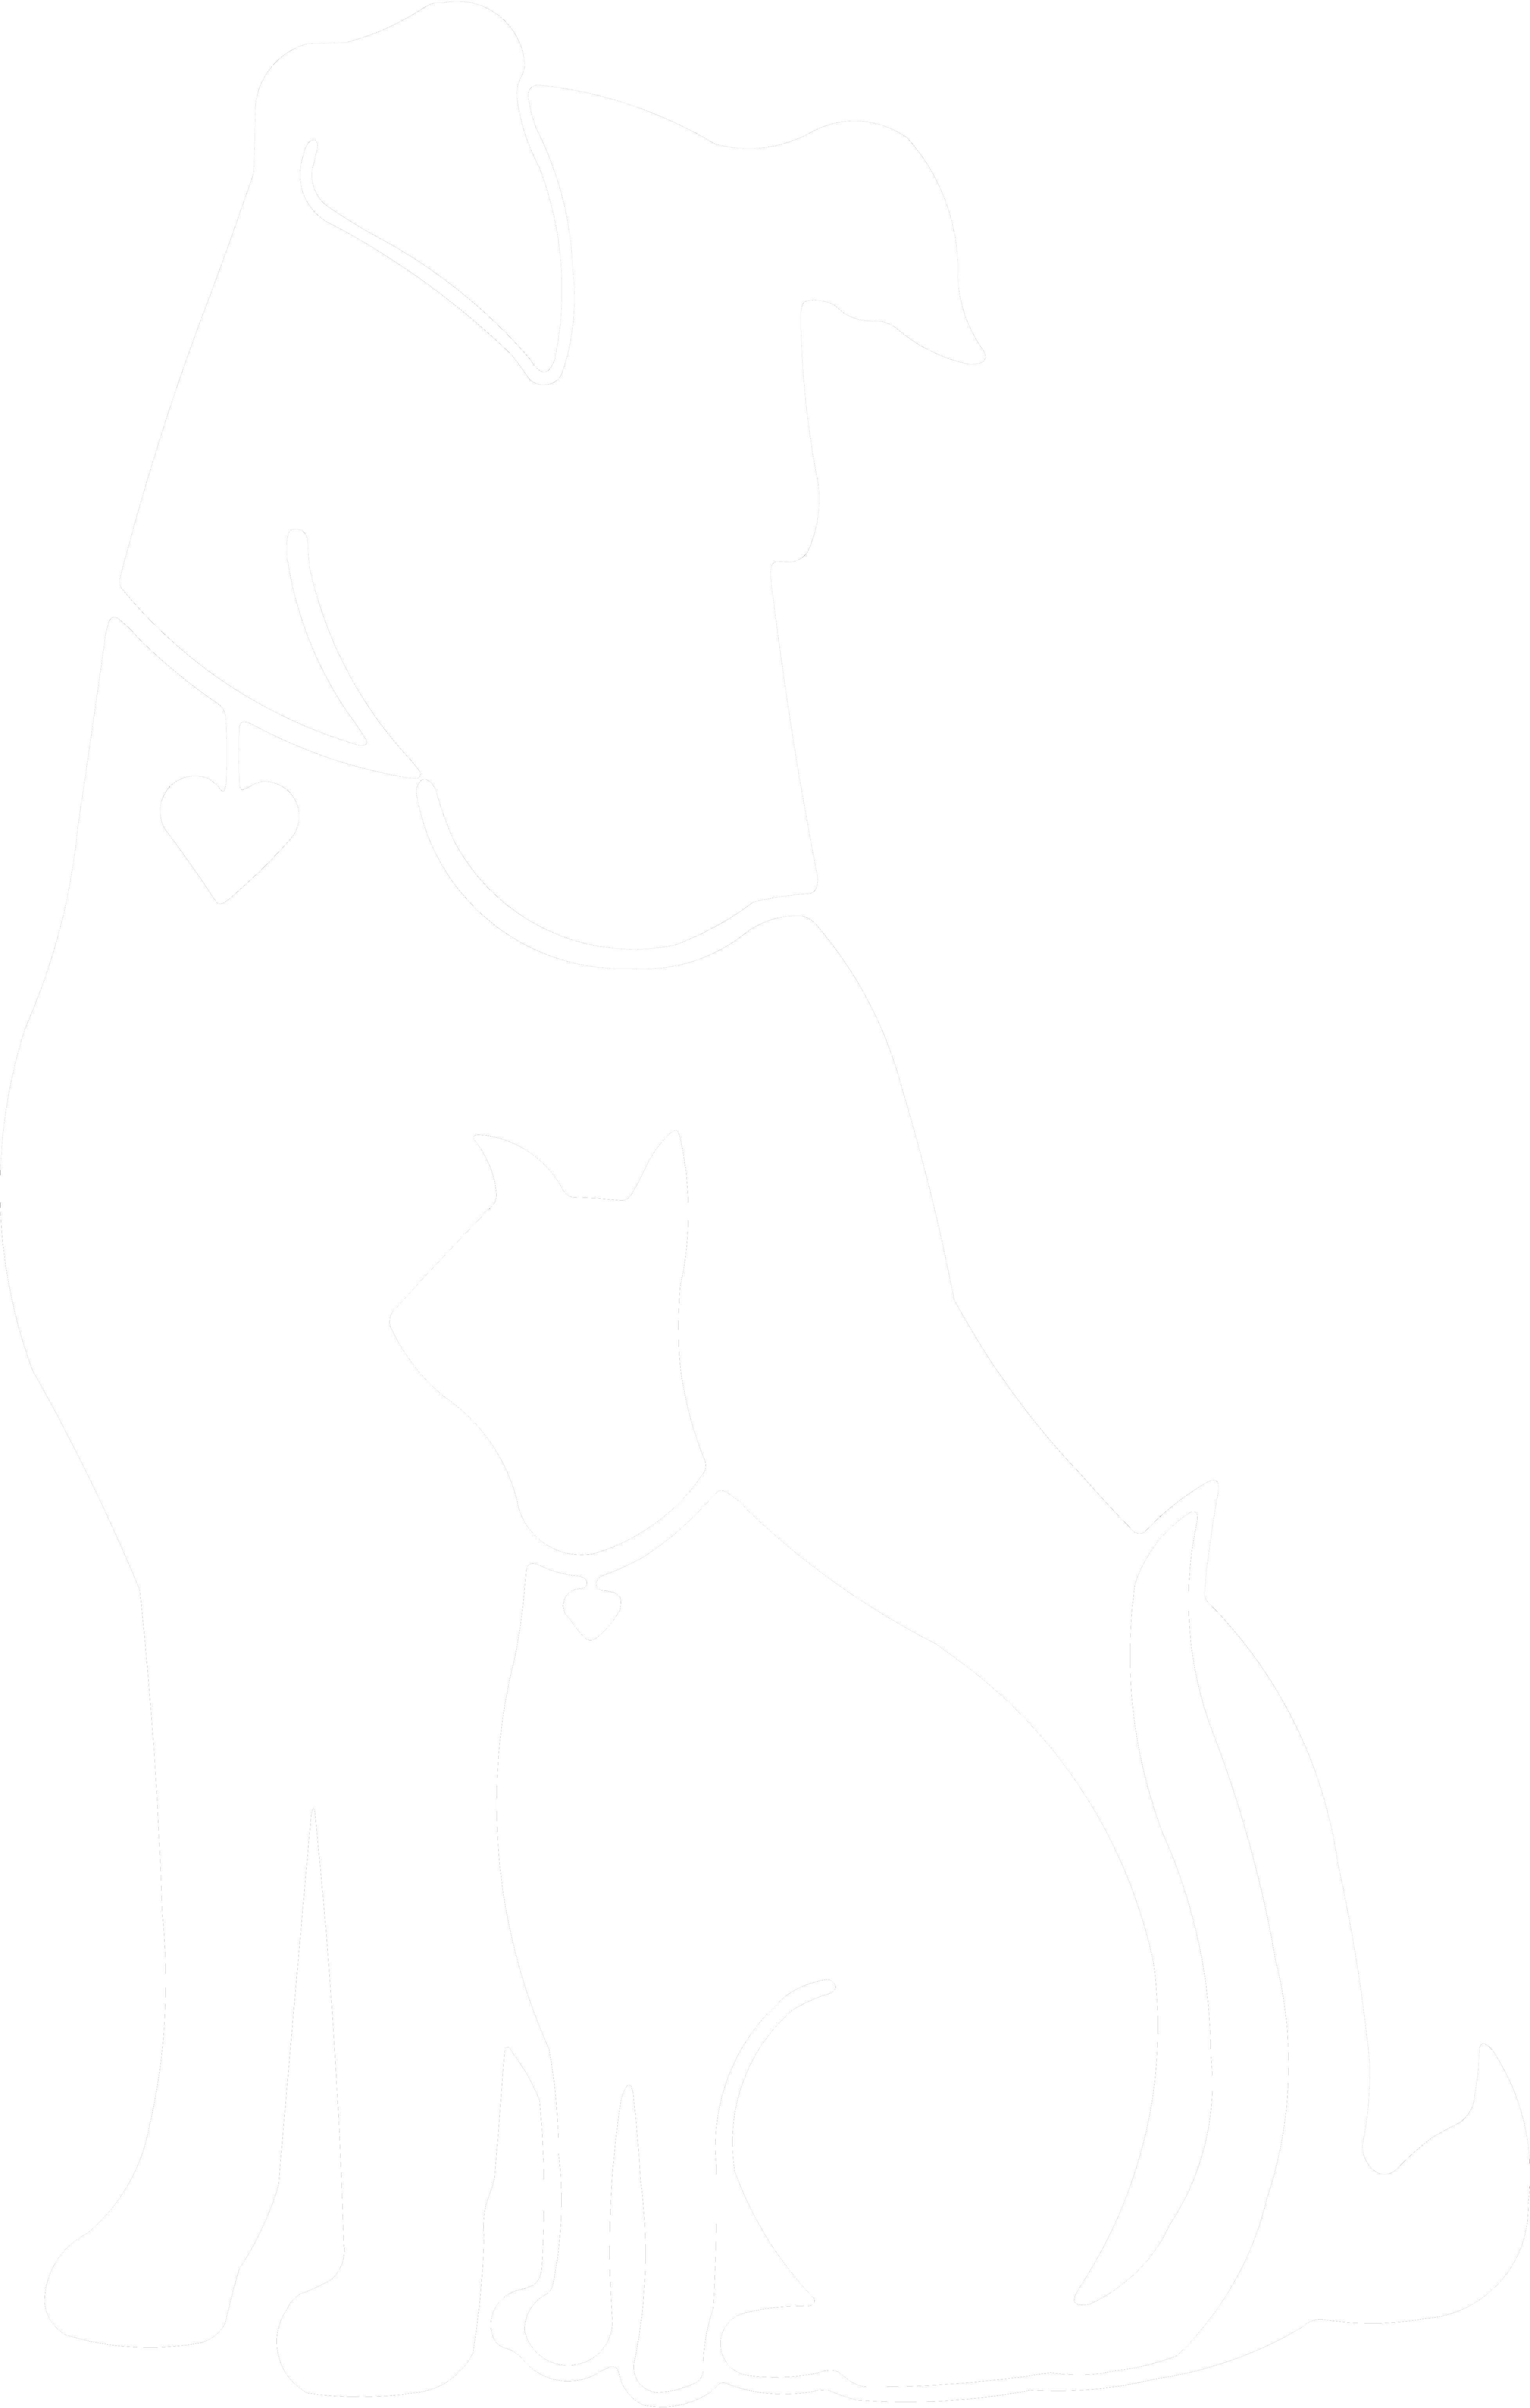 Dog and cat black and white clipart banner stock Cat And Dog PNG Black And White Transparent Cat And Dog Black And ... banner stock